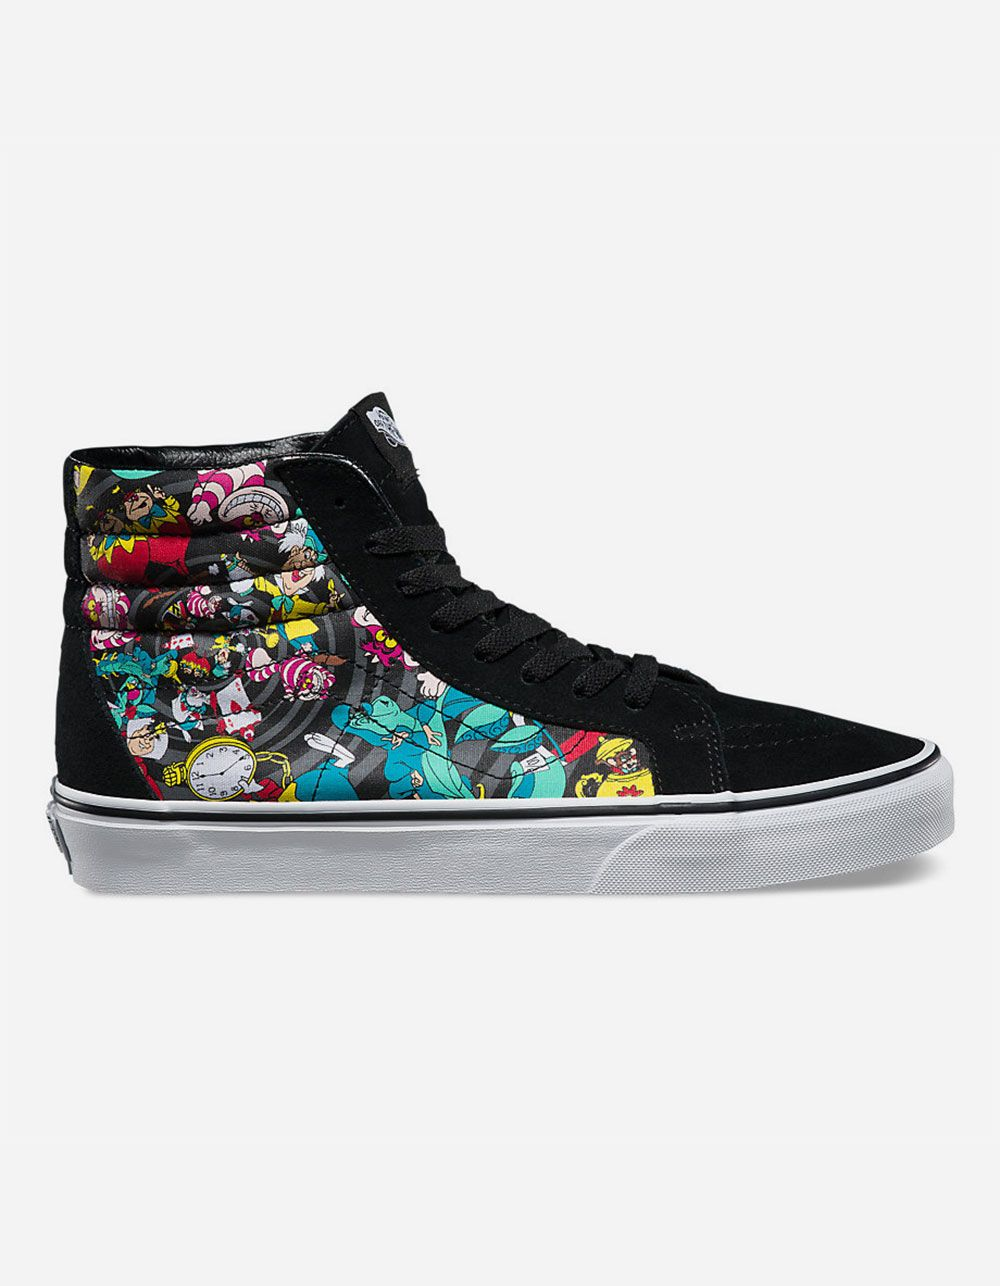 c0866c01a8cdc6 womens 8.5 Disney Alice in wonderland Vans sk8-hi